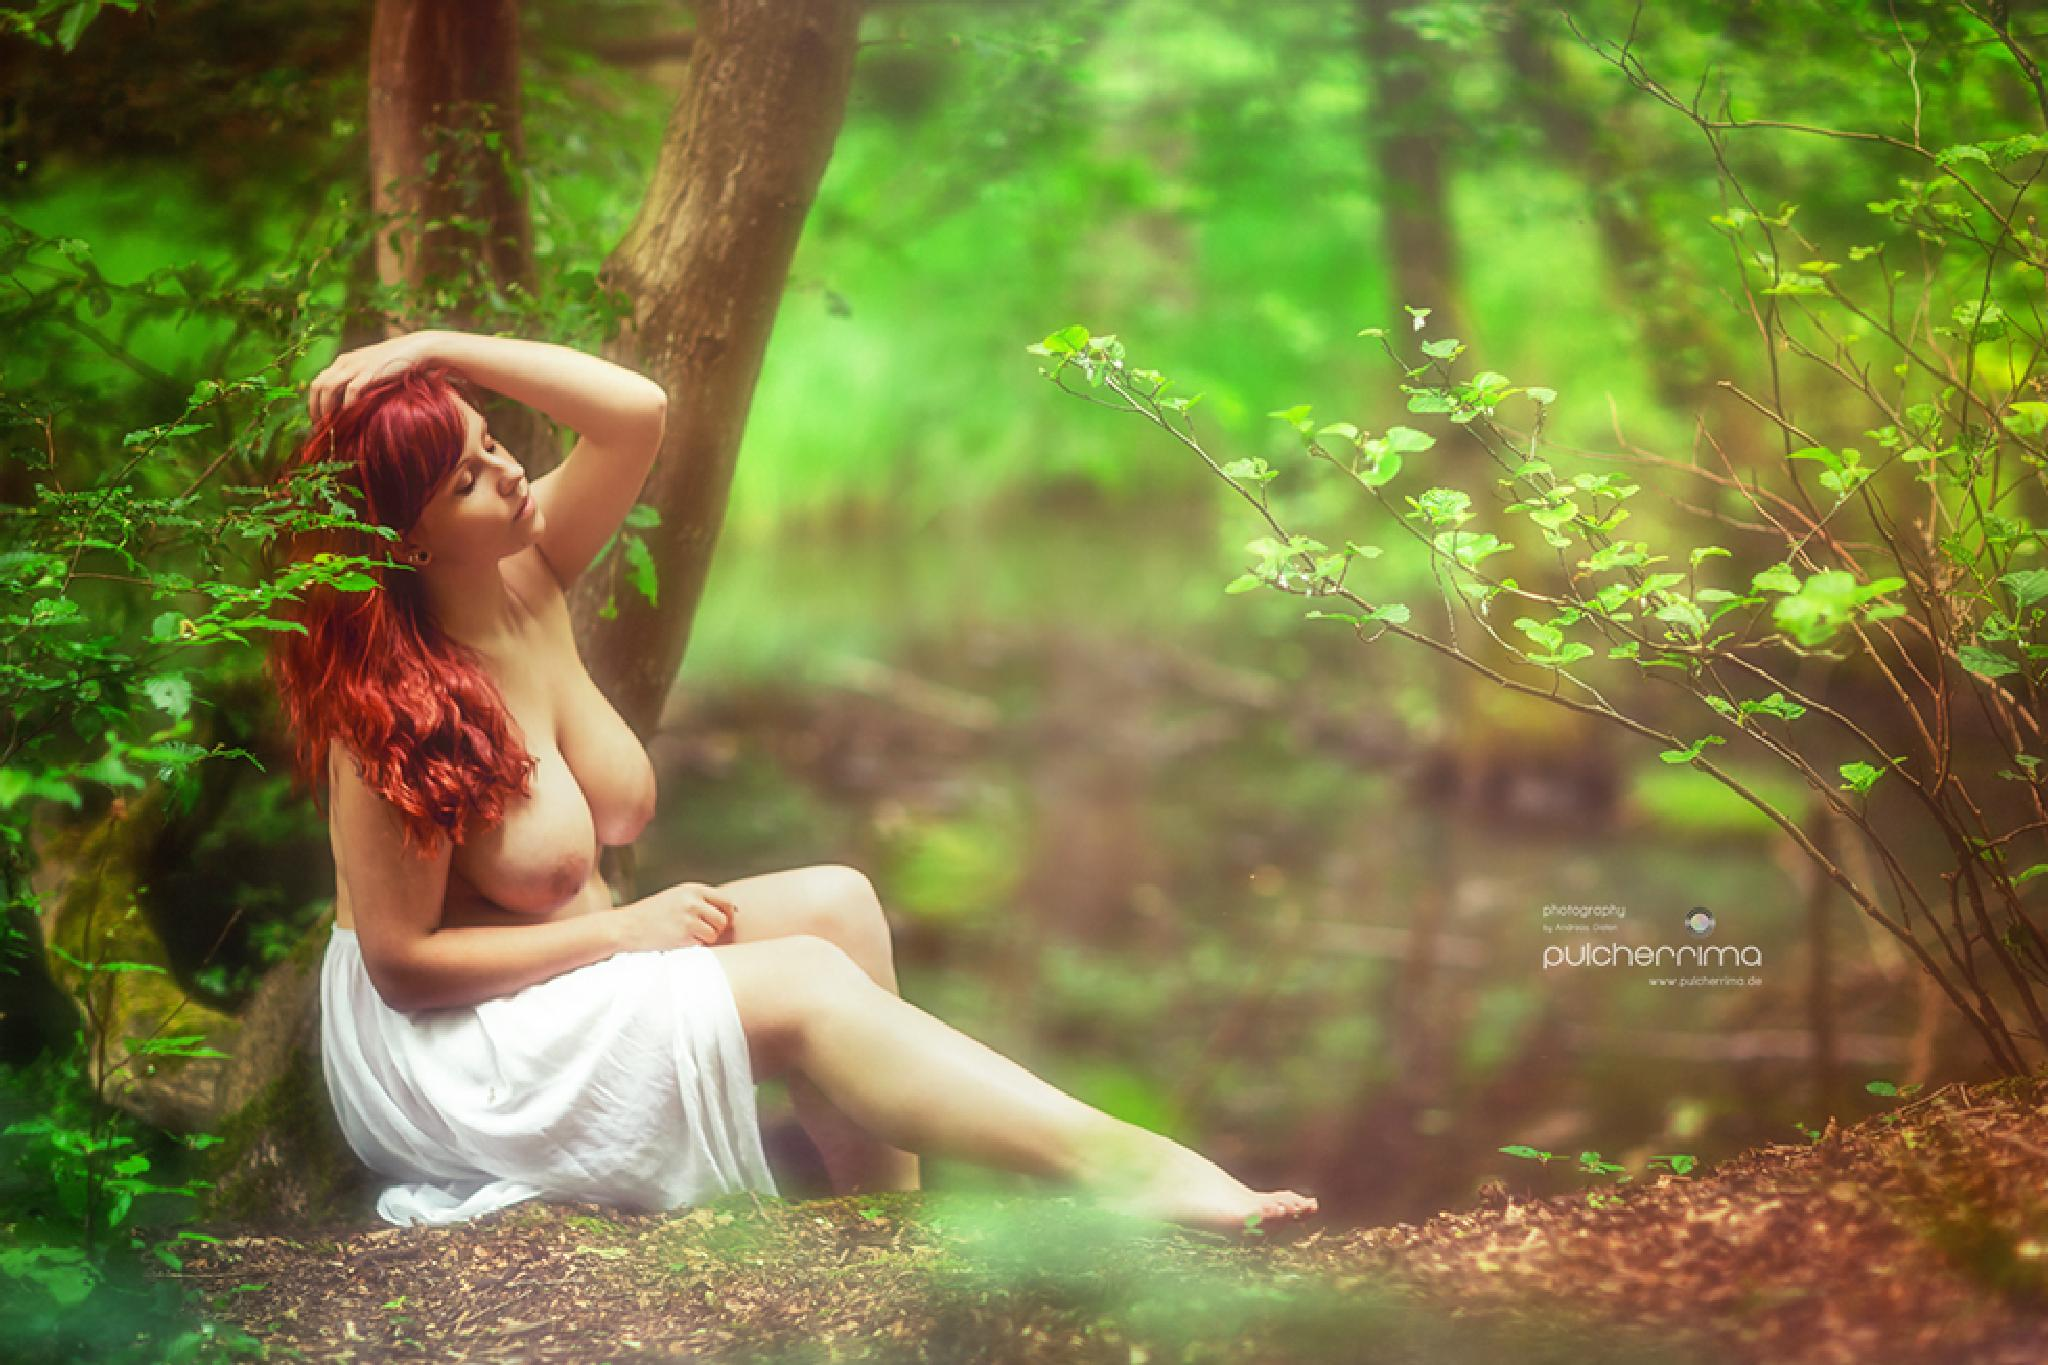 nowhere by pulcherrimaphotography